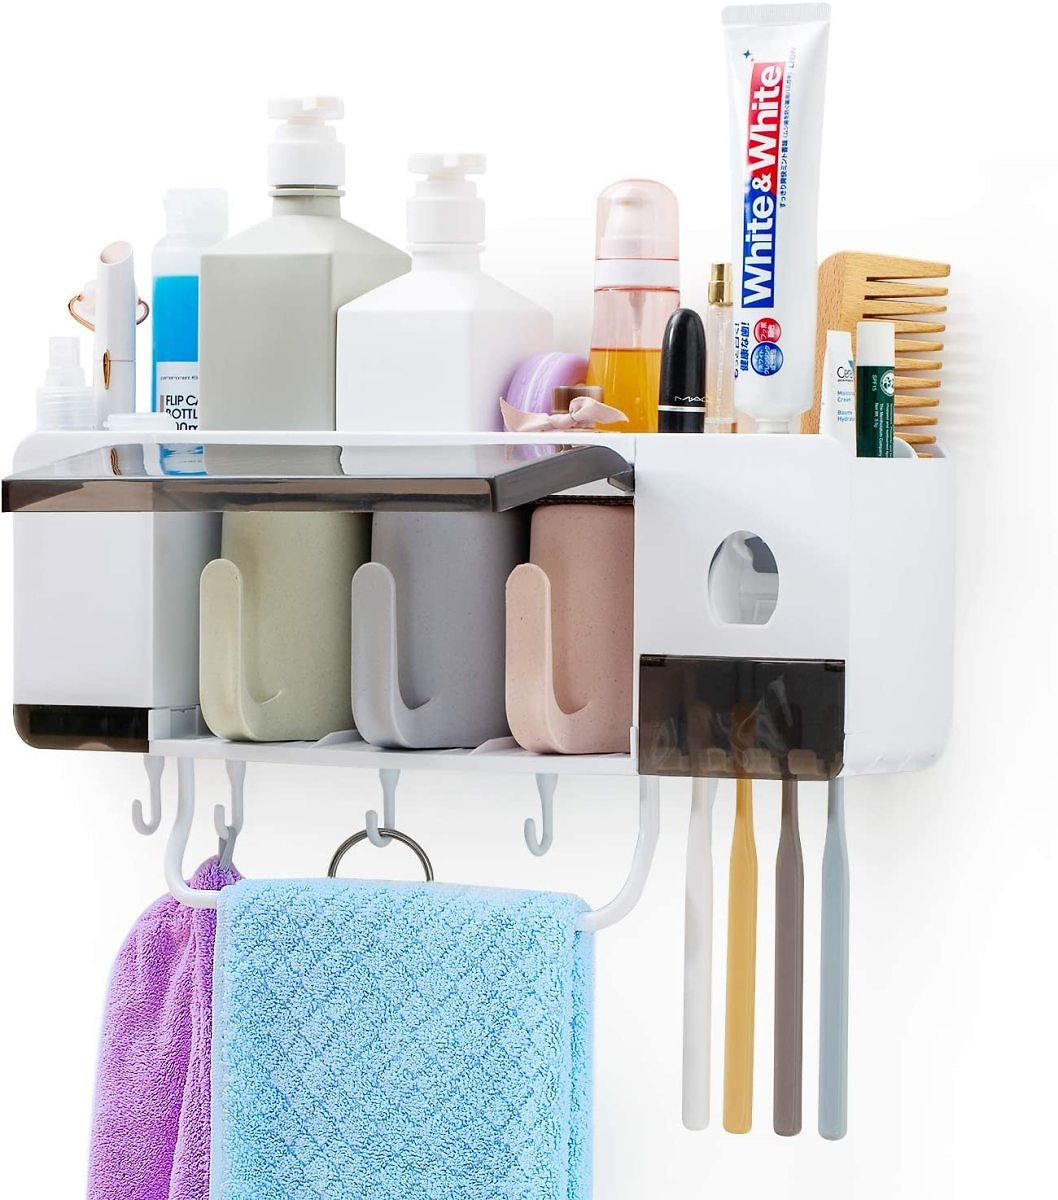 Multifunctional Wall-Mounted Toothbrush Holder with Automatic Toothpaste Dispenser